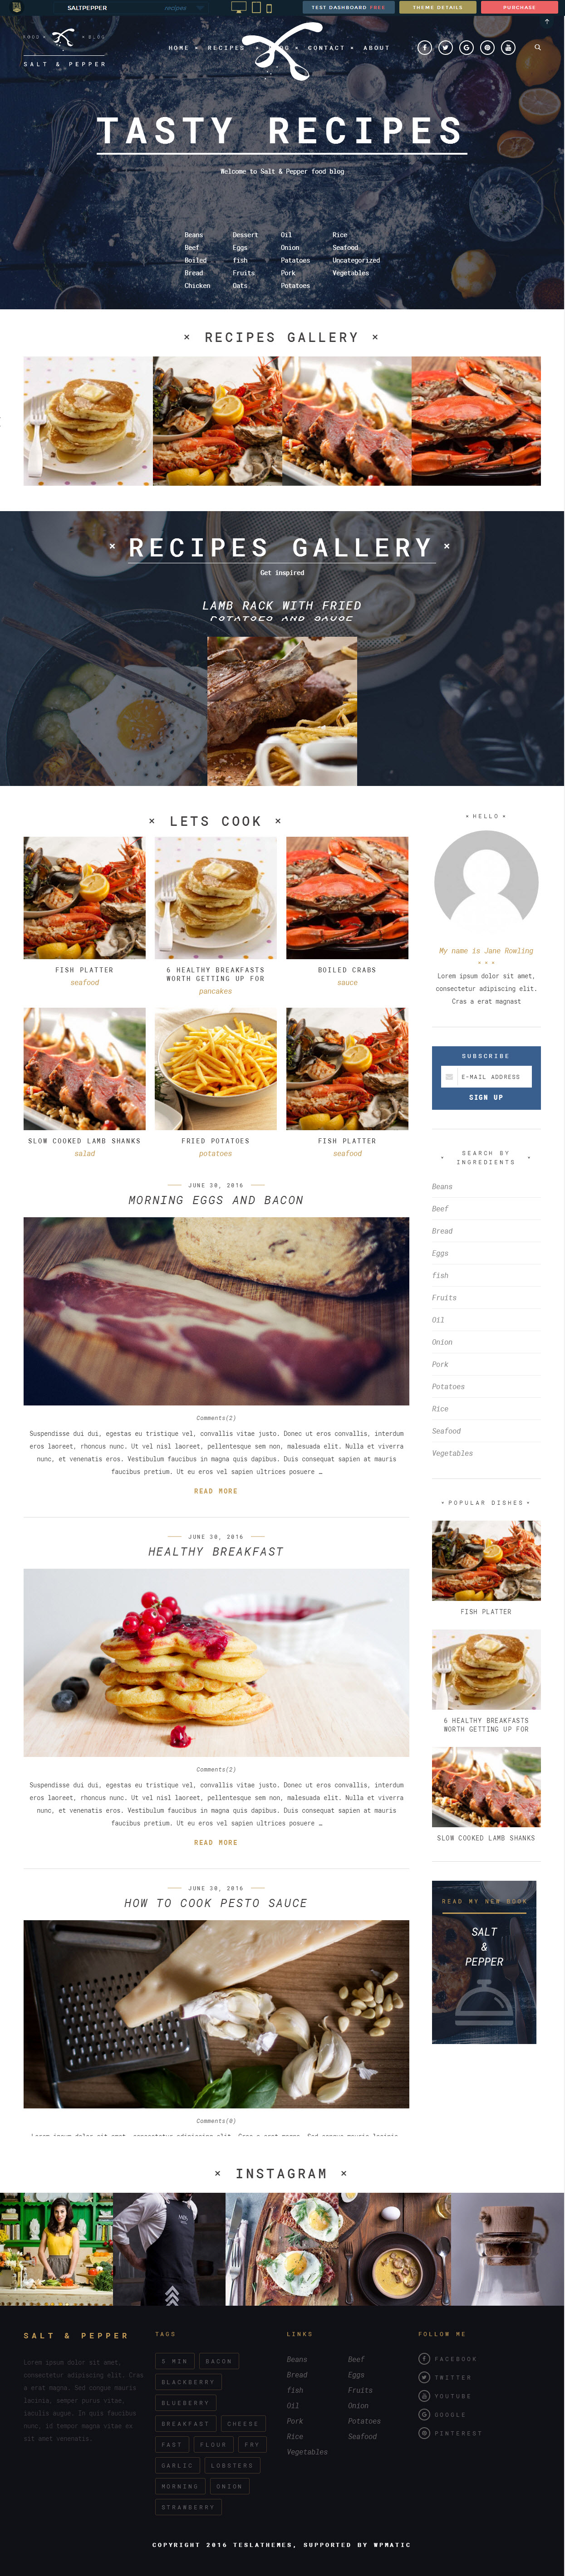 tasty & recipes theme